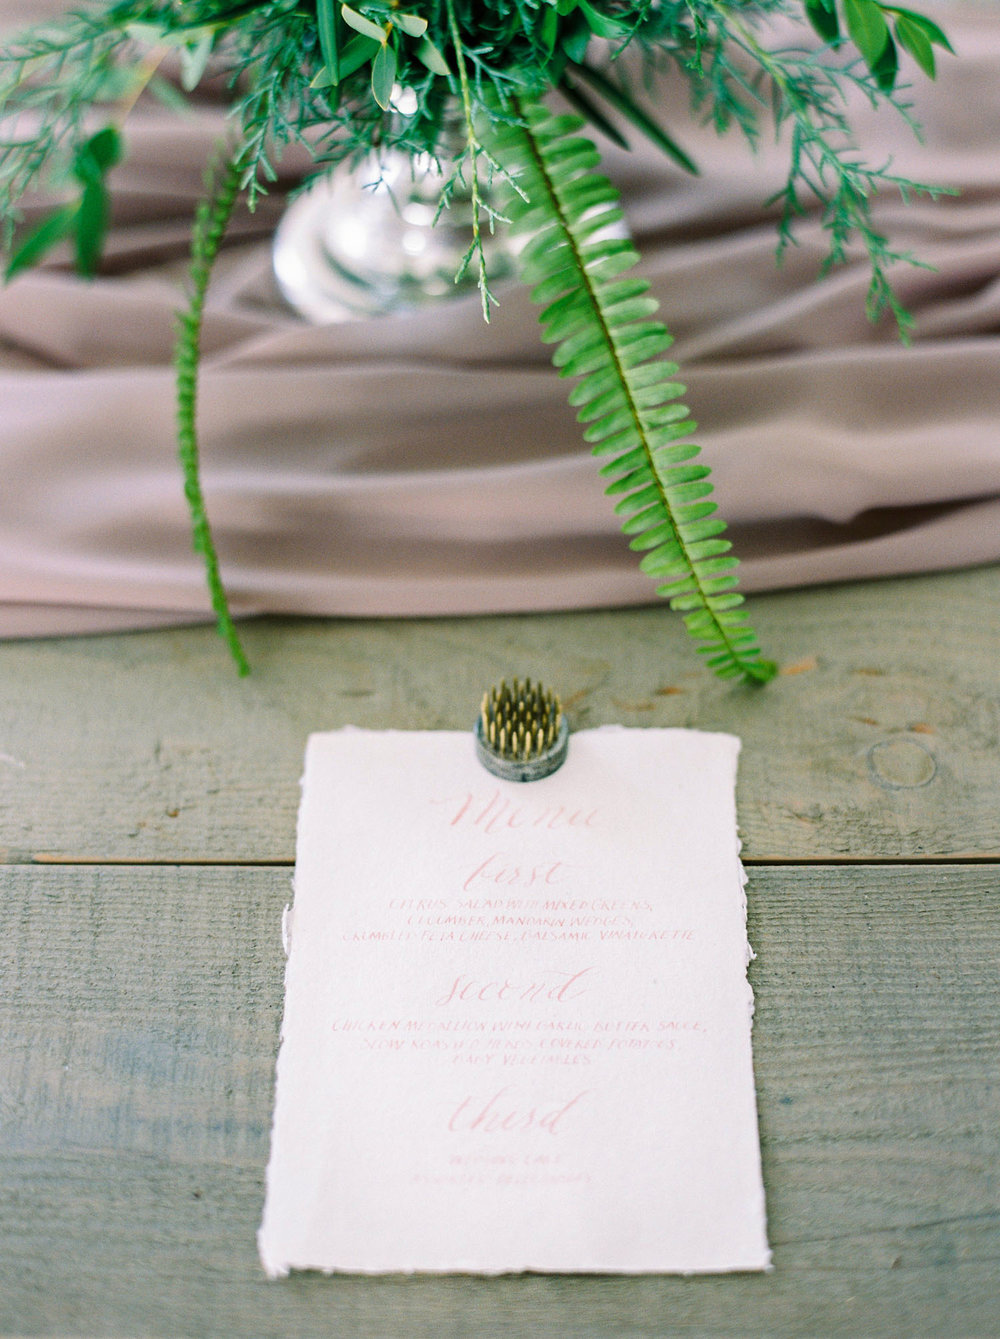 Calligraphy Calgary wedding stationery 3.jpg